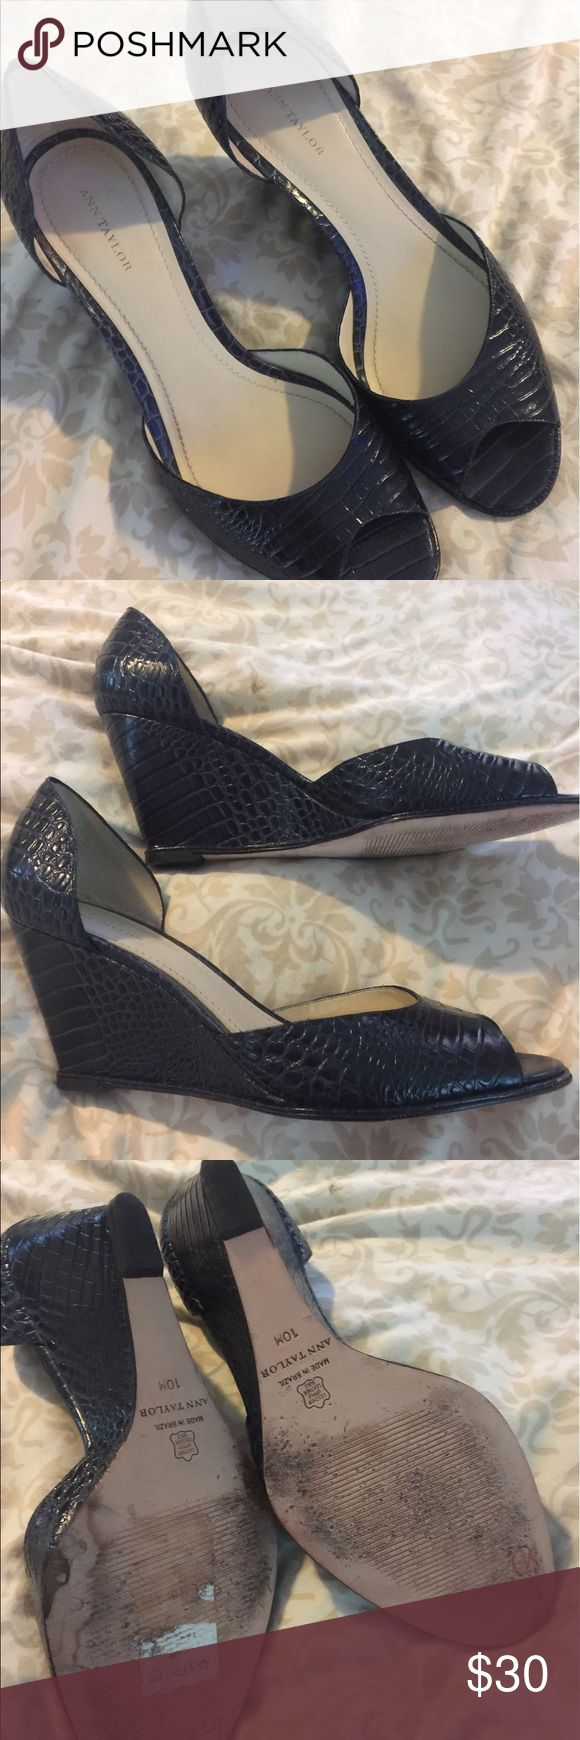 Ann Taylor navy wedge shoes Navy patent shoes in excellent condition Ann Taylor Shoes Wedges